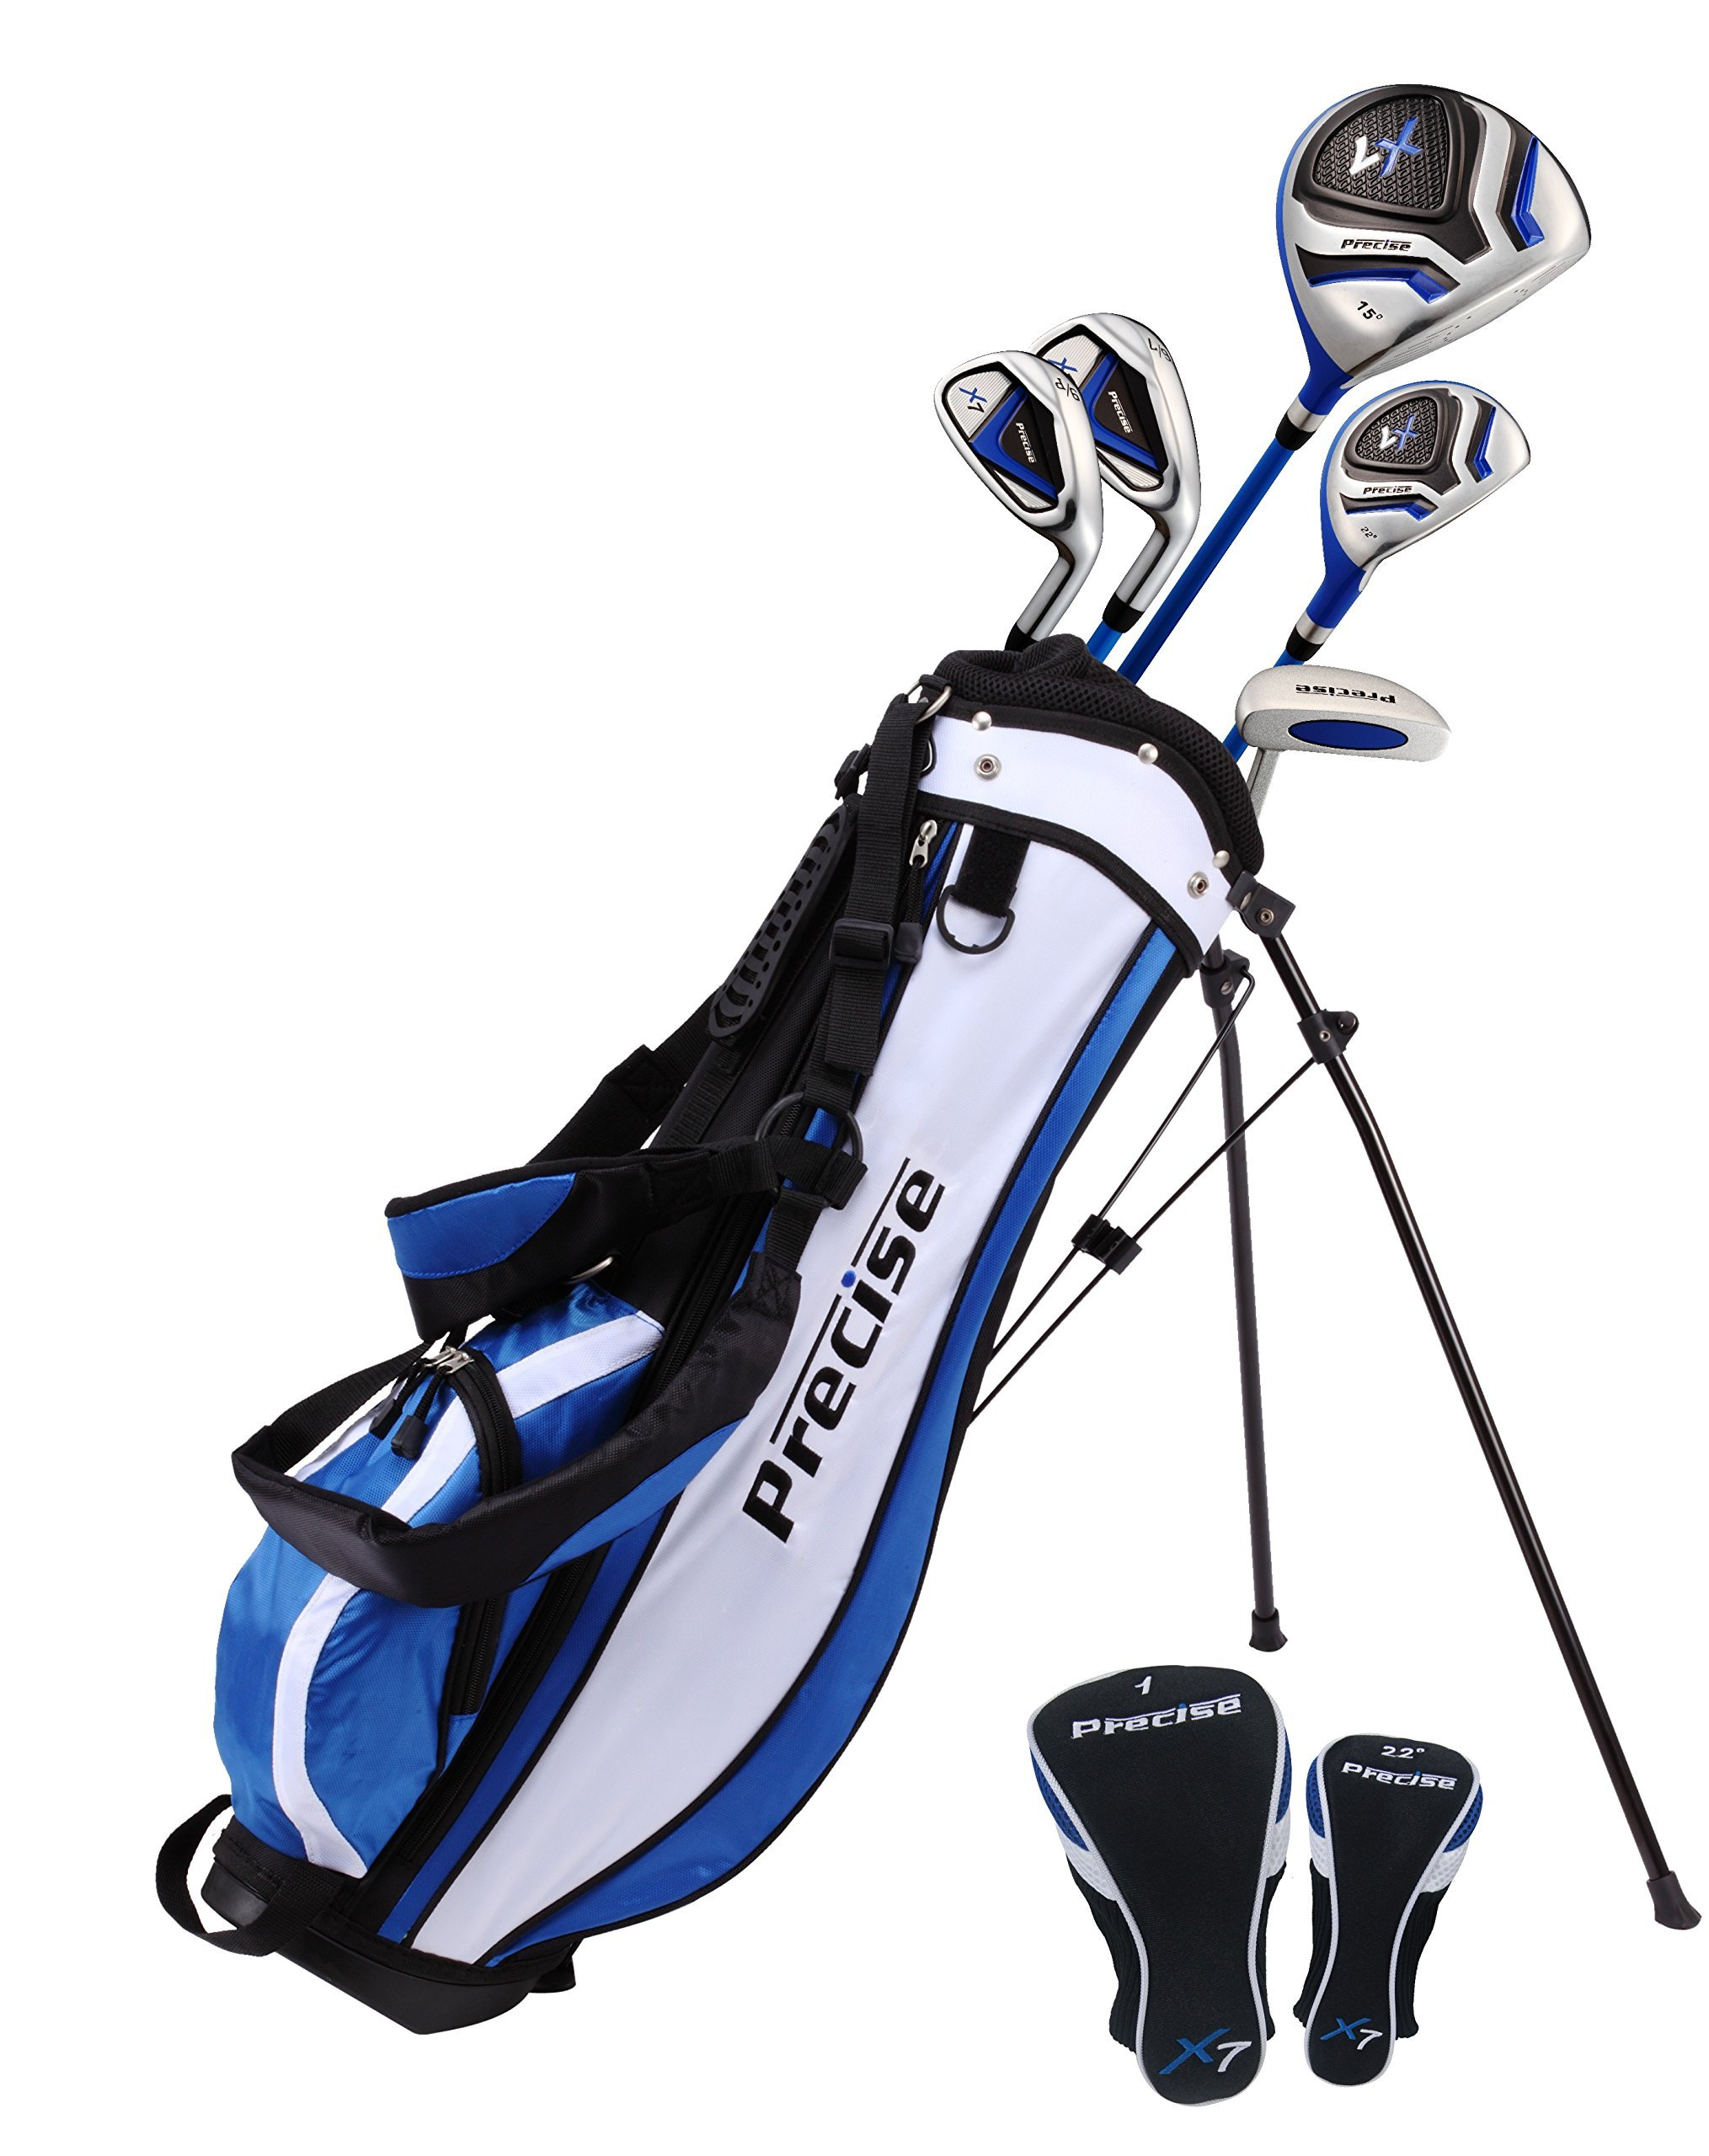 Distinctive Left Handed Junior Golf Club Set for Age 9 to 12 (Height 4'4'' to 5'), Left Handed Only, Set Includes: Driver (15''), Hybrid Wood (22, 2 Irons, Putter, Bonus Stand Bag & 2 Headcovers by Precise